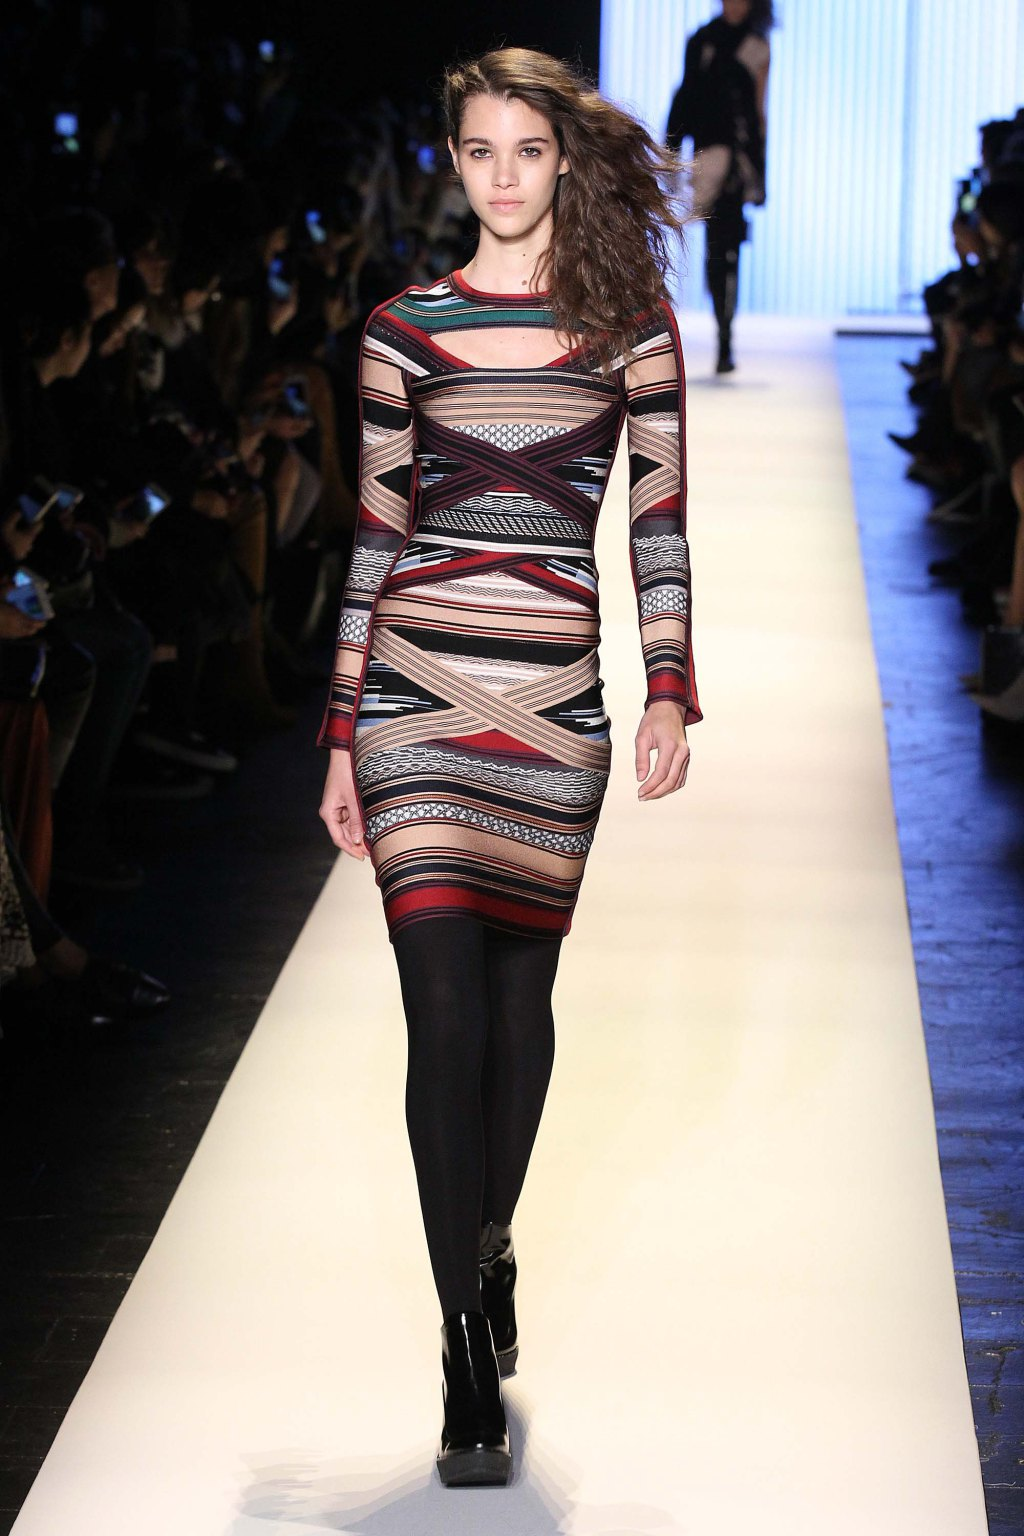 NYFW Hervé Léger Fashion Show Fall:Winter 2016 Louboutins & Love Fashion Blog Esther Santer NYC Street Style Models Collection Hair Makeup Bandage Dresses Pretty Trends Fringe Pink White Inspo Press Event Coverage Details Photos Hair Jacket  Outfit .jpg